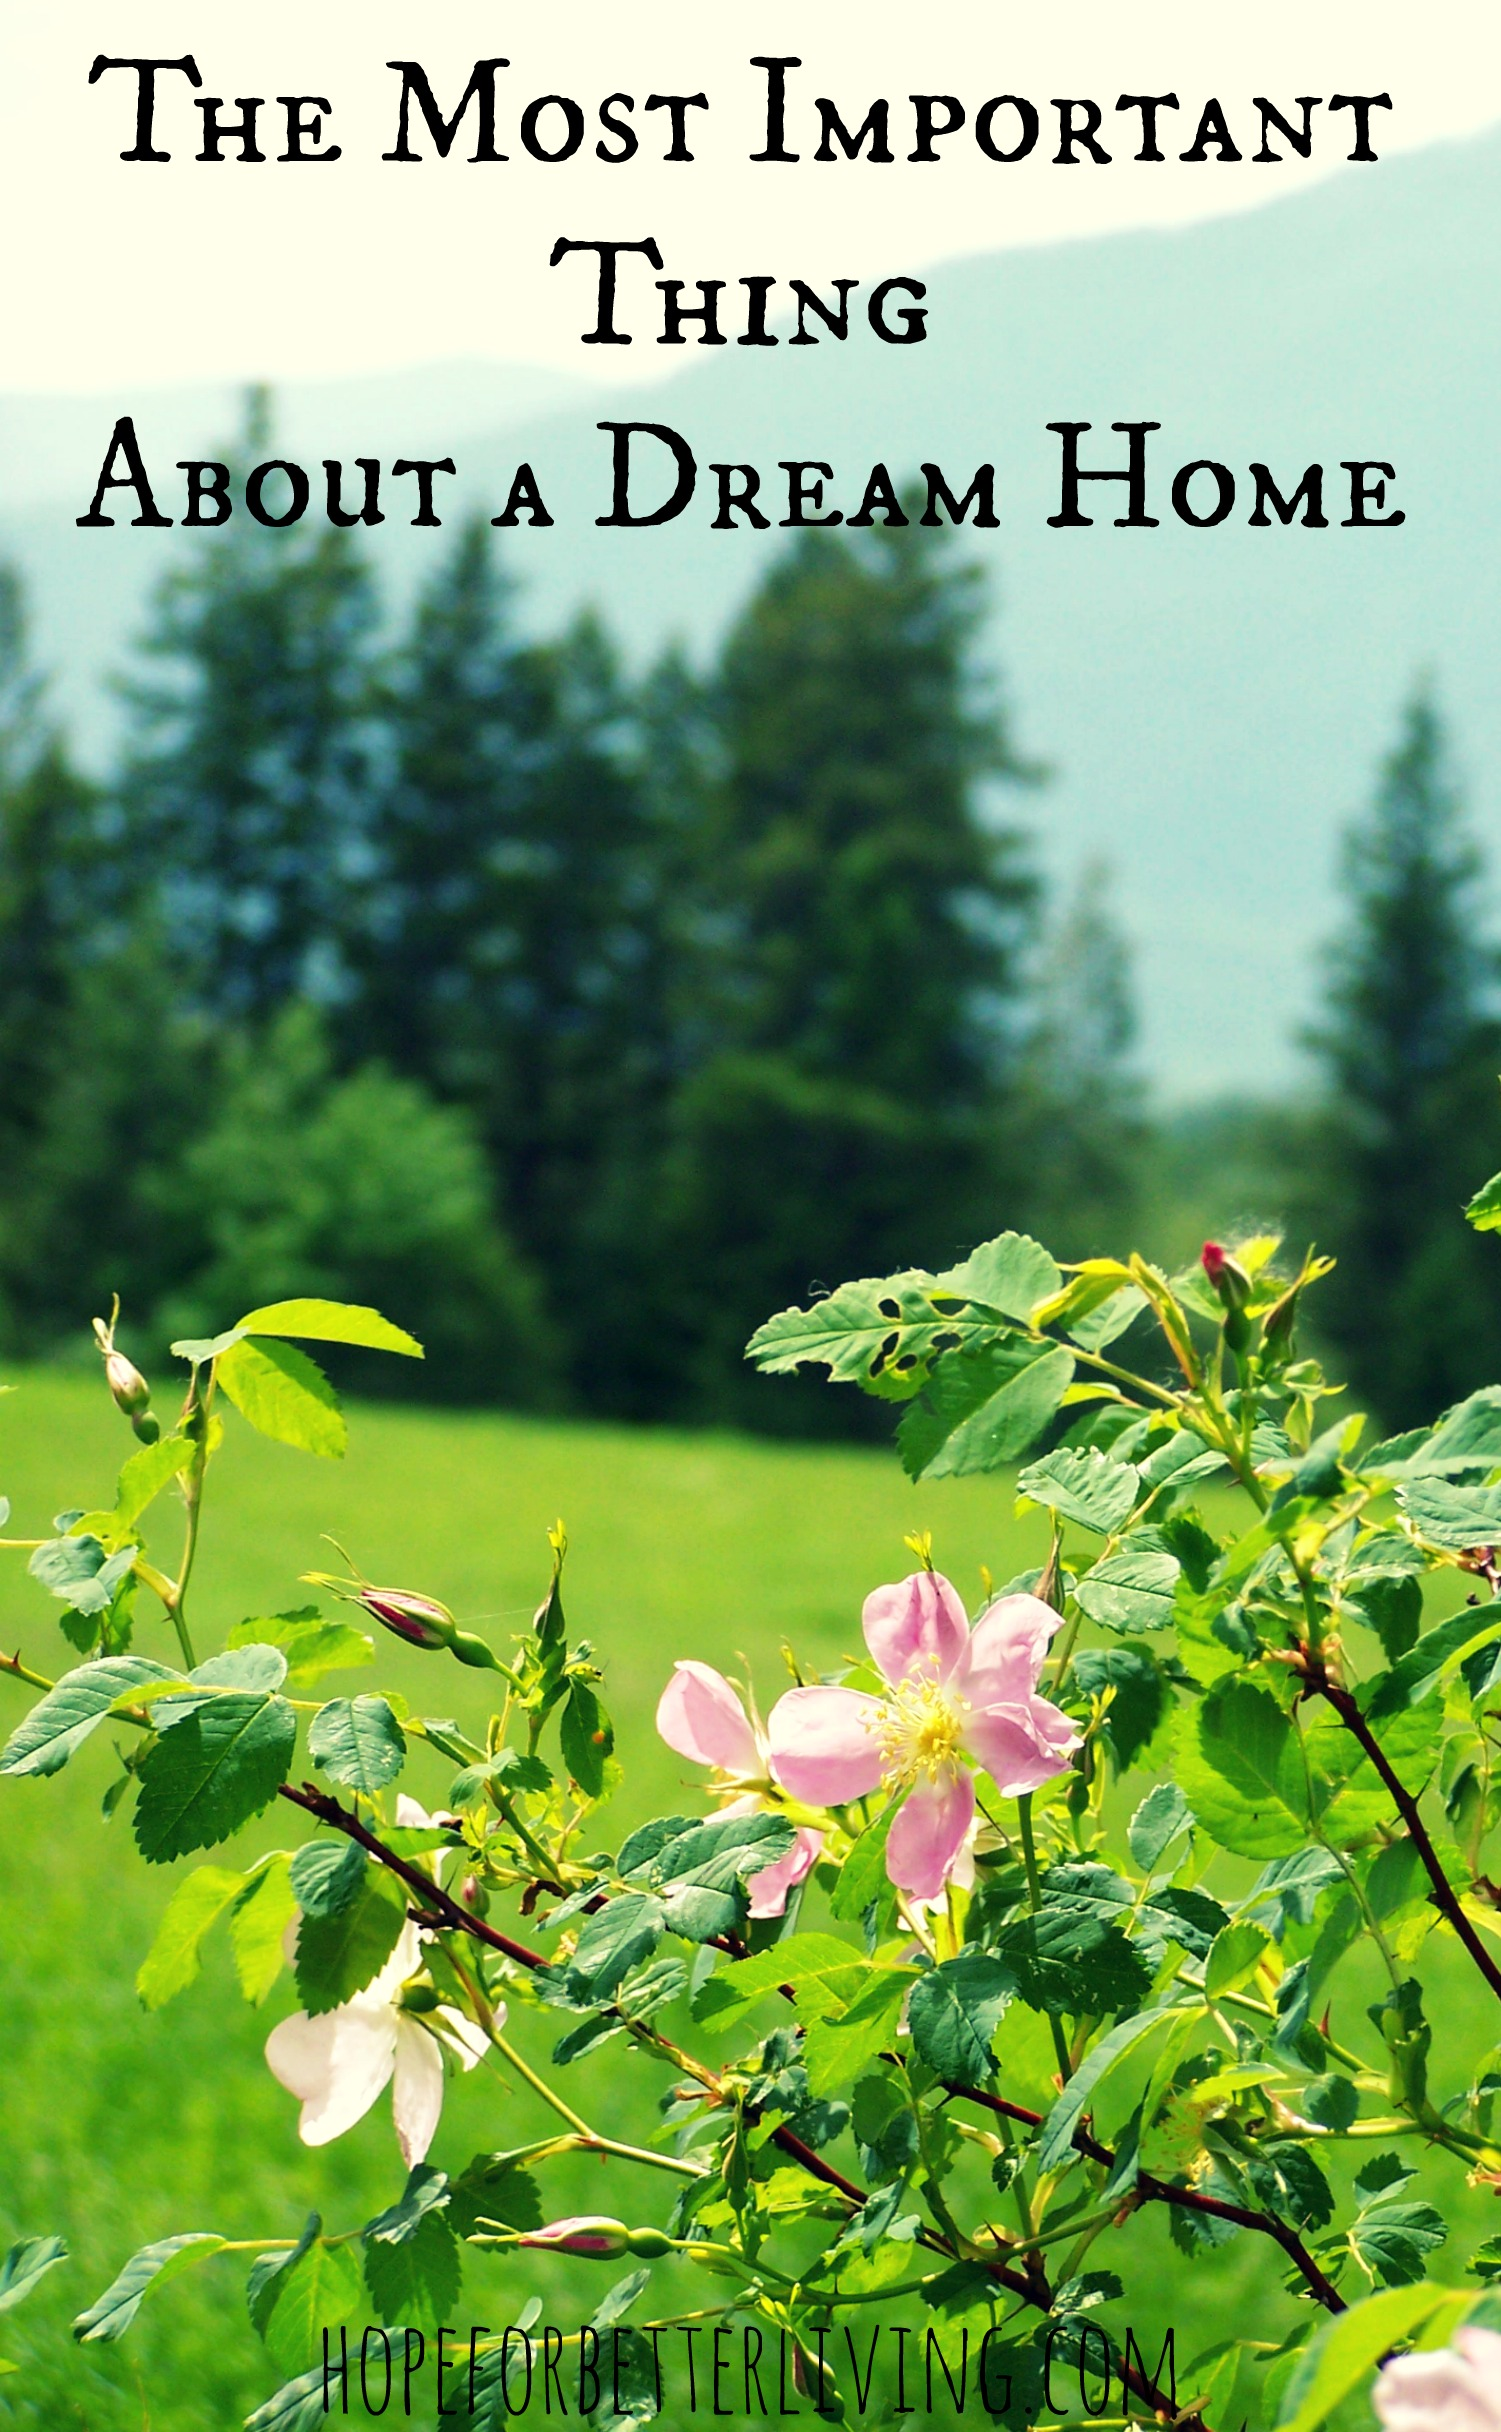 A Dream Home: What is Most Important?